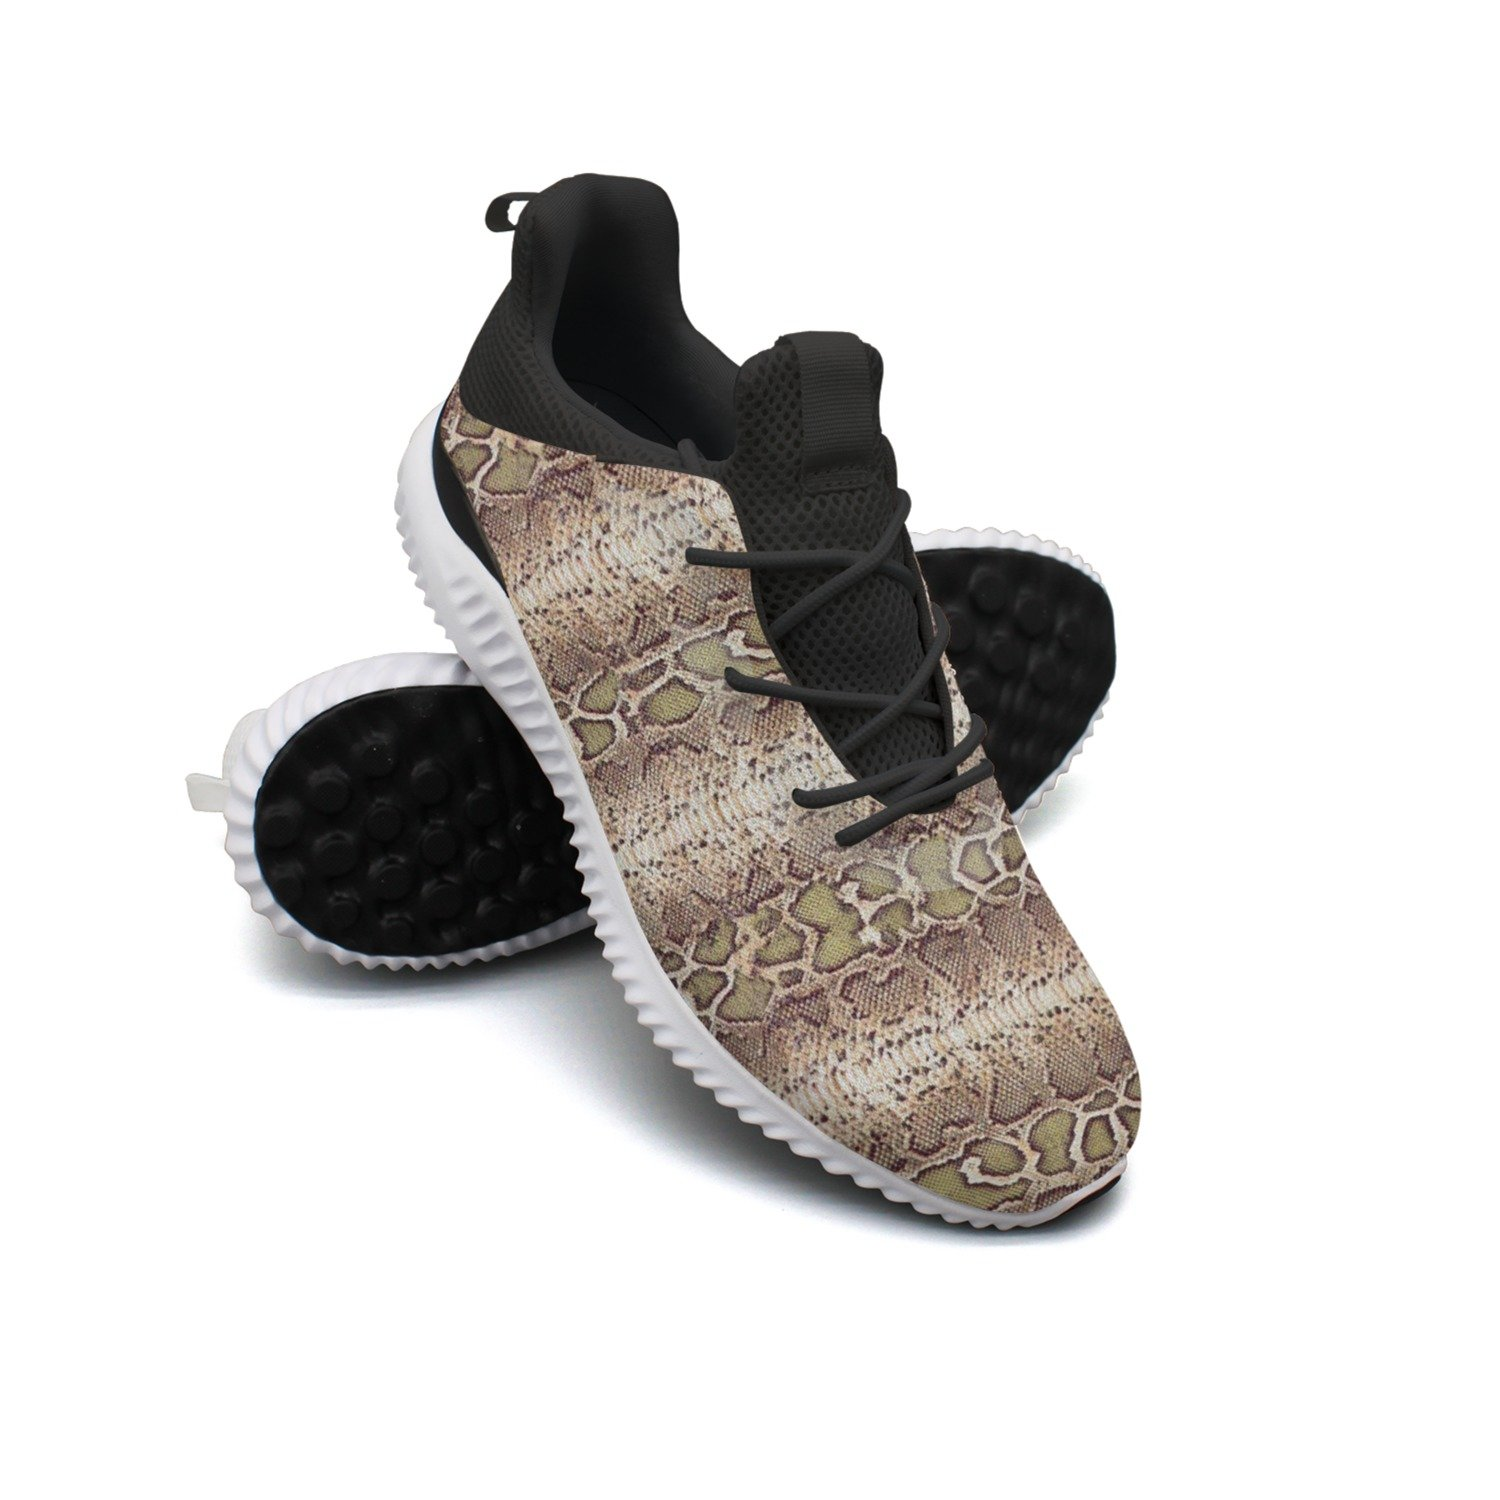 Fake Snake Skin Leisure Casual Running Shoes Man Cool Novelty Cute